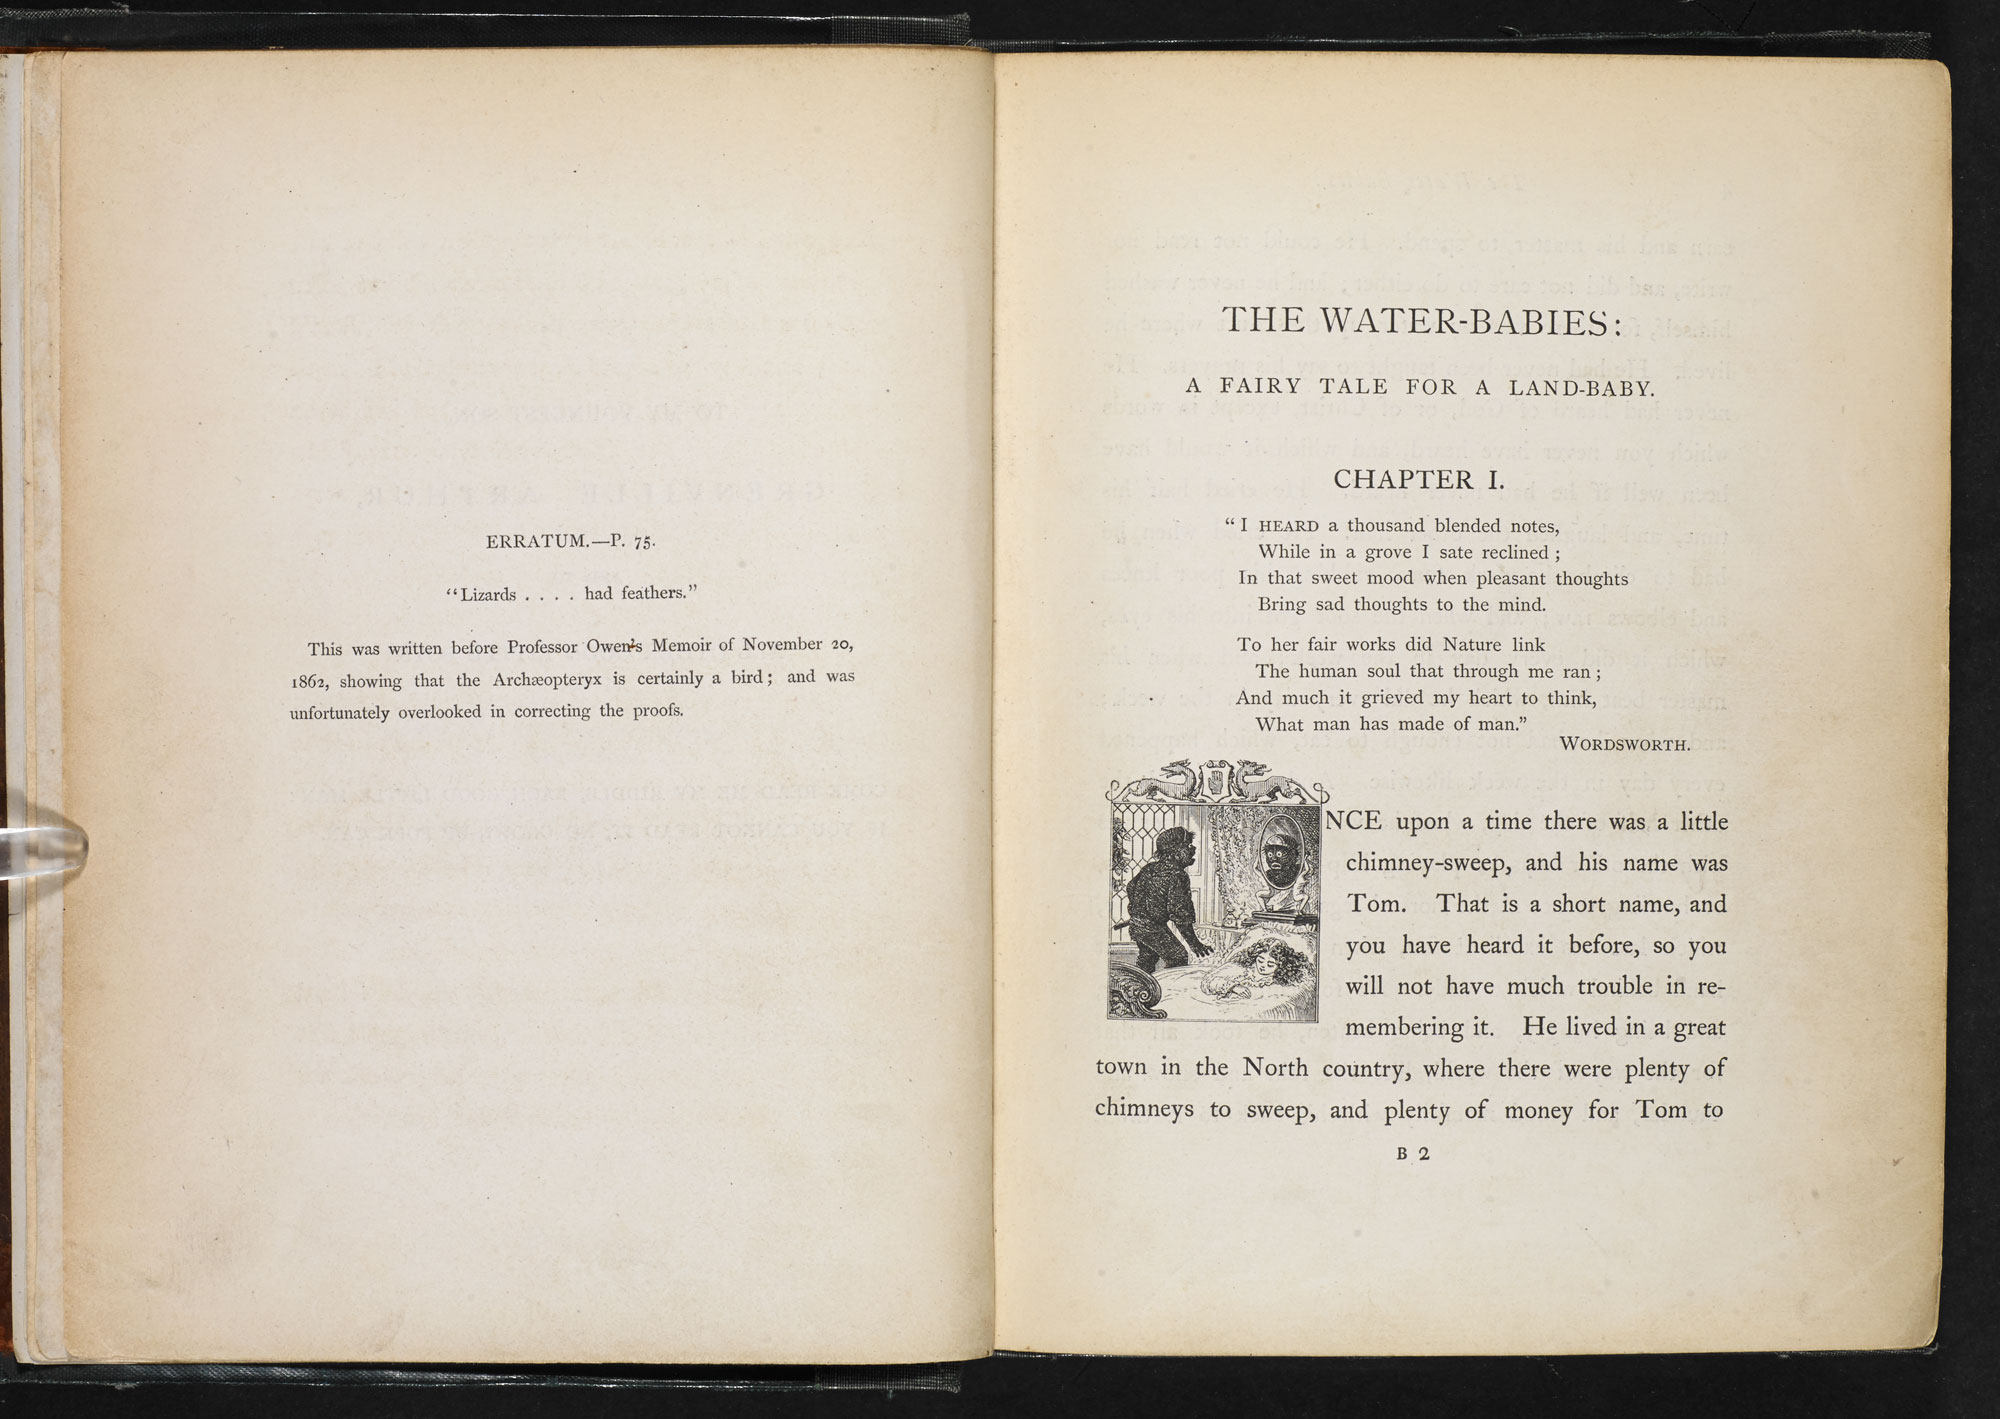 Charles Kingsley's The Water-Babies [page: 2-3]